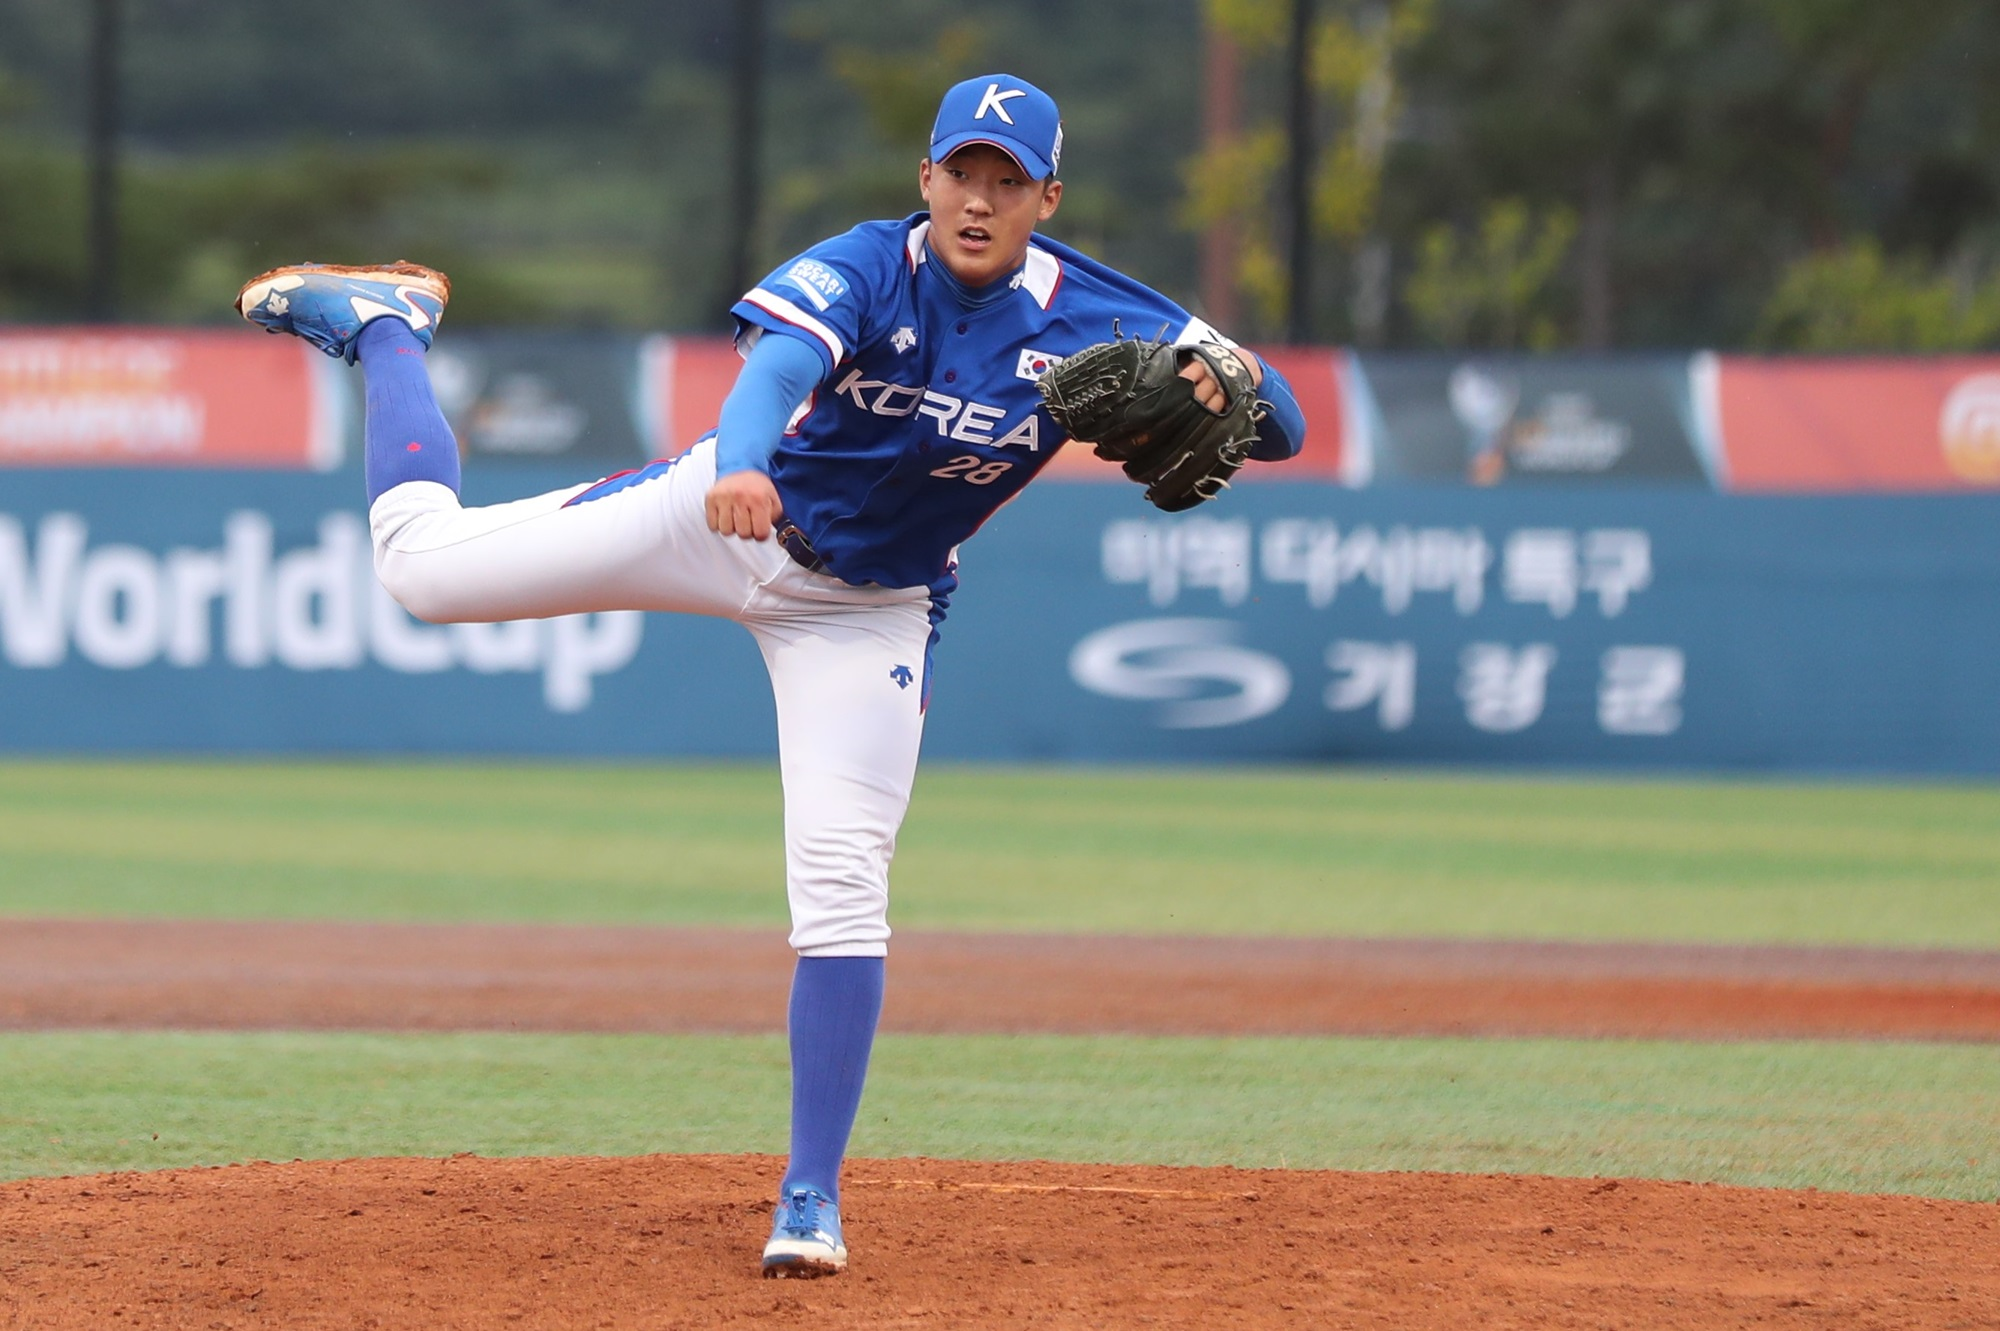 Korea's pitching staff approached the game as Committee